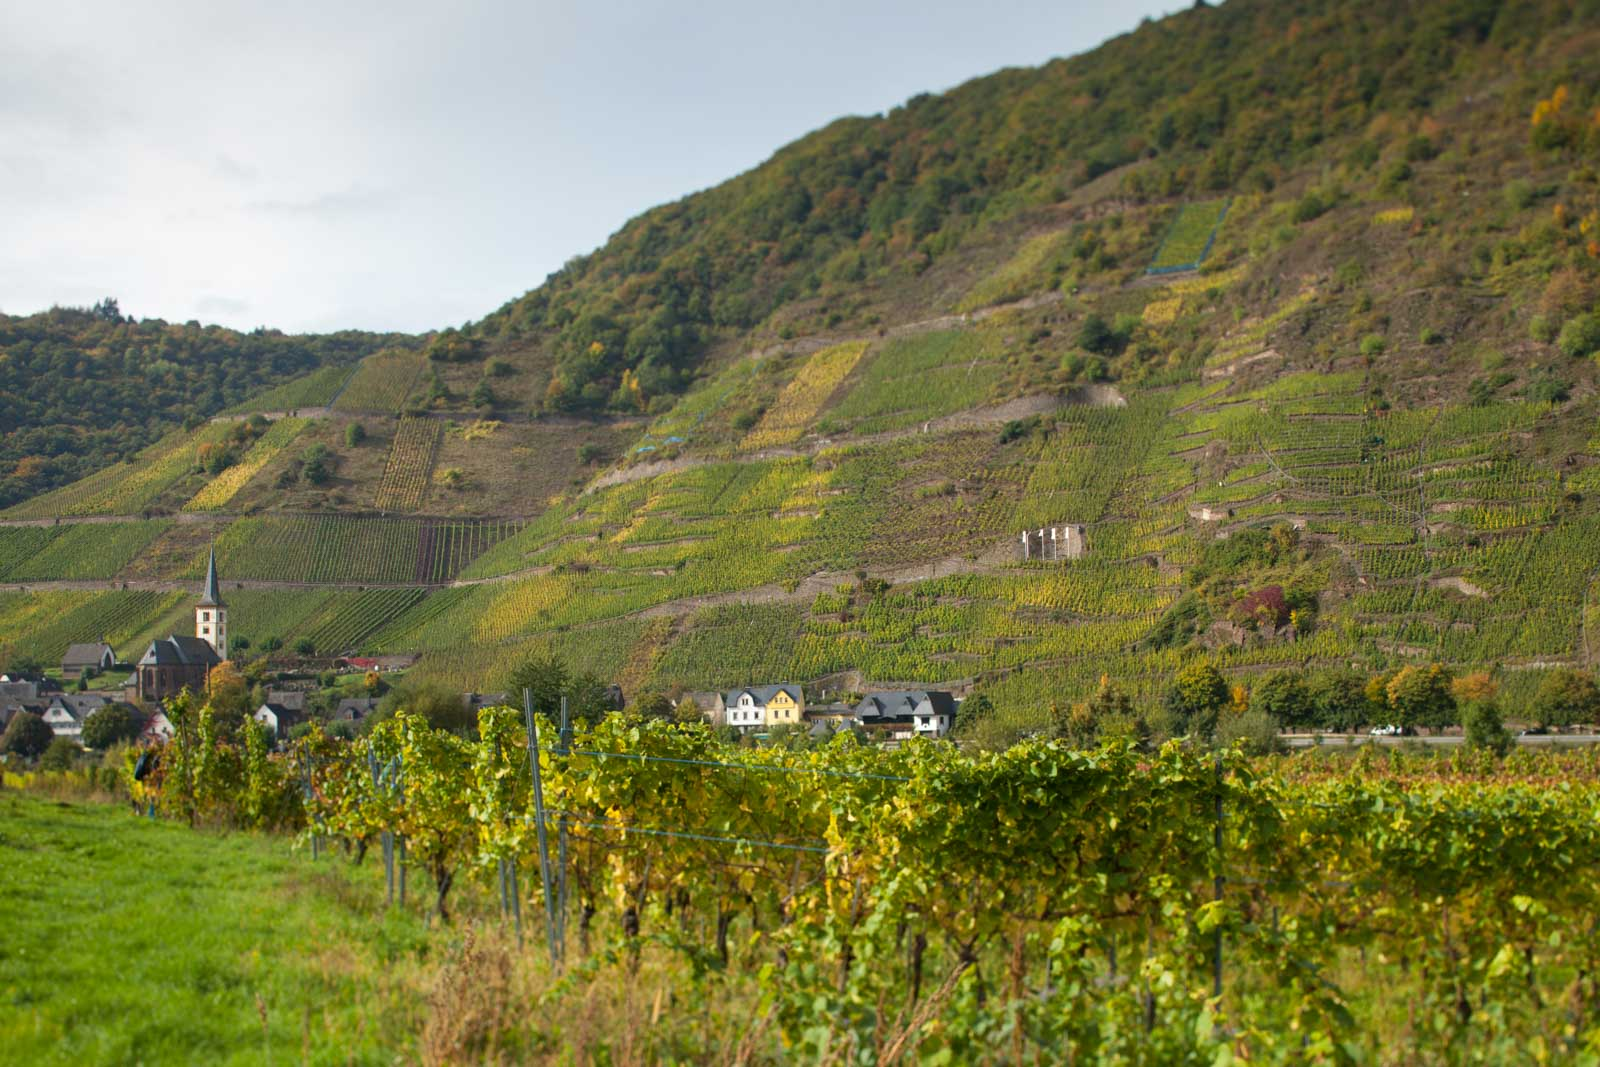 A view of the town of Bremm and the Bremmer Calmont vineyard. ©Kevin Day/Opening a Bottle